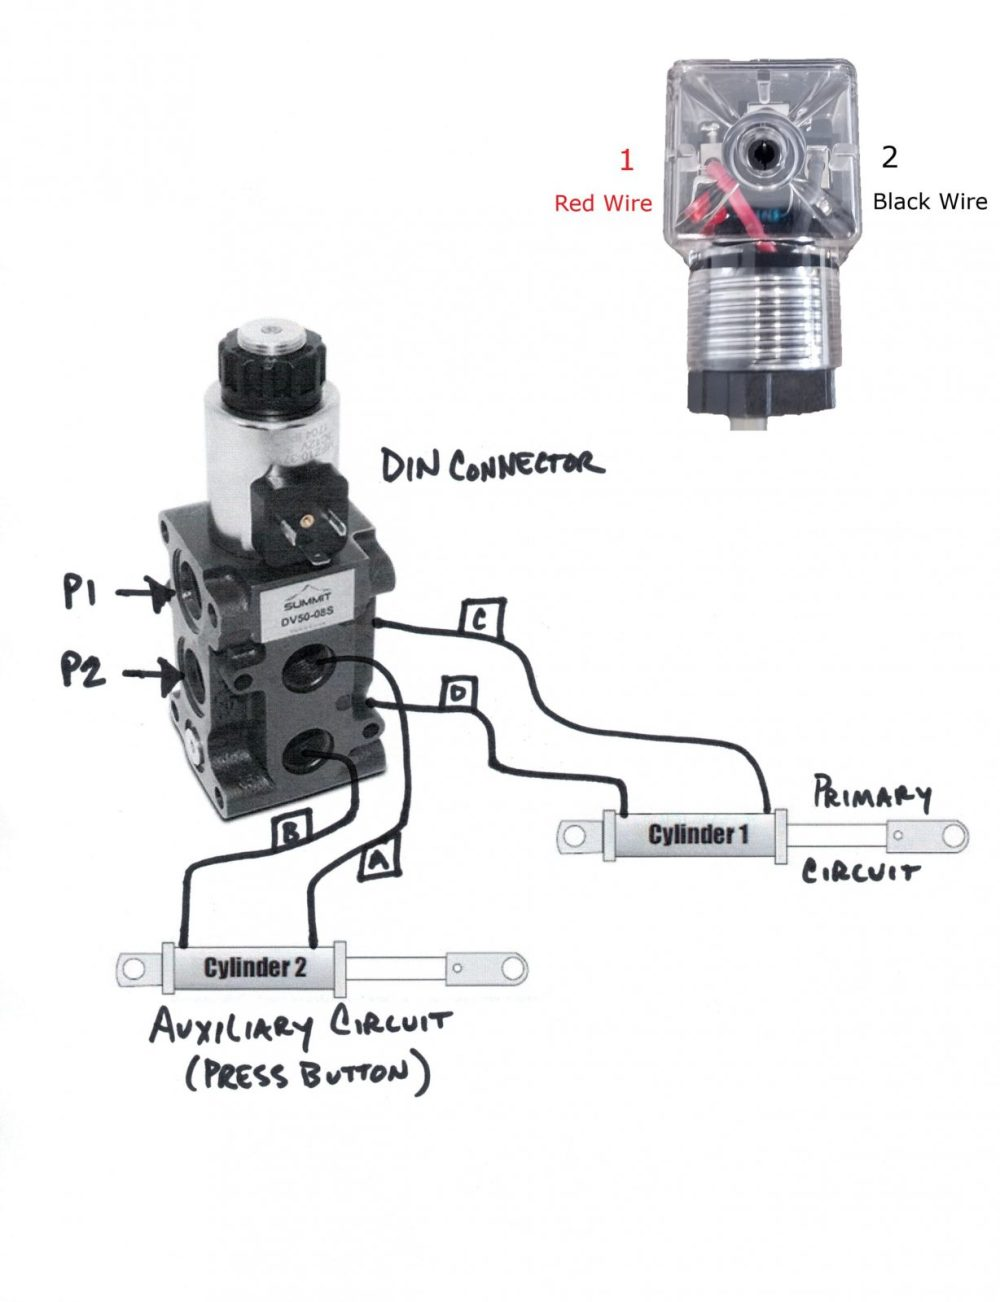 medium resolution of hydraulic solenoid selector dv50 instruction diagram how a diverter valve works diverter selector valve